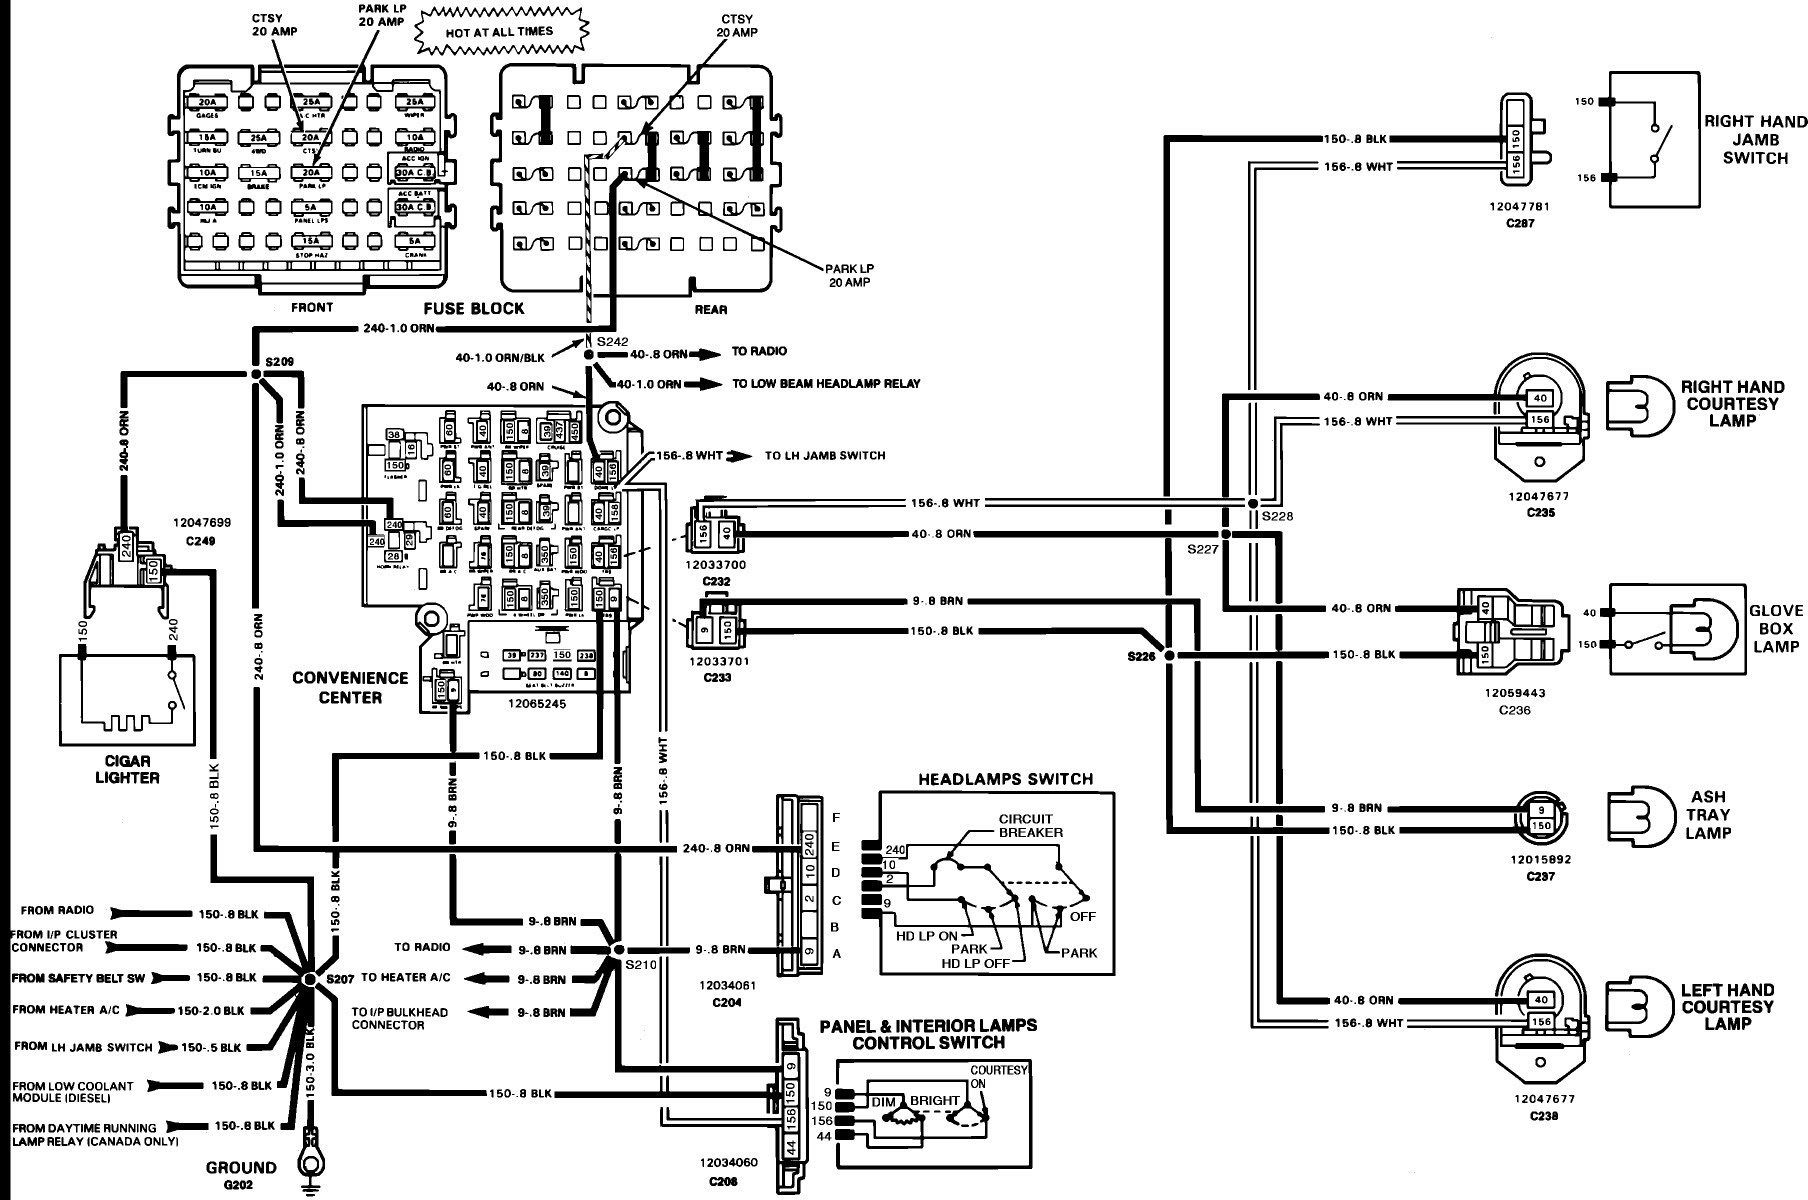 Fuse Panel Diagram For 1991 Chevrolet 1500 350 - Wiring Diagram | 1990 Gmc Sierra Heater Wire Diagram |  | cars-trucks24.blogspot.com